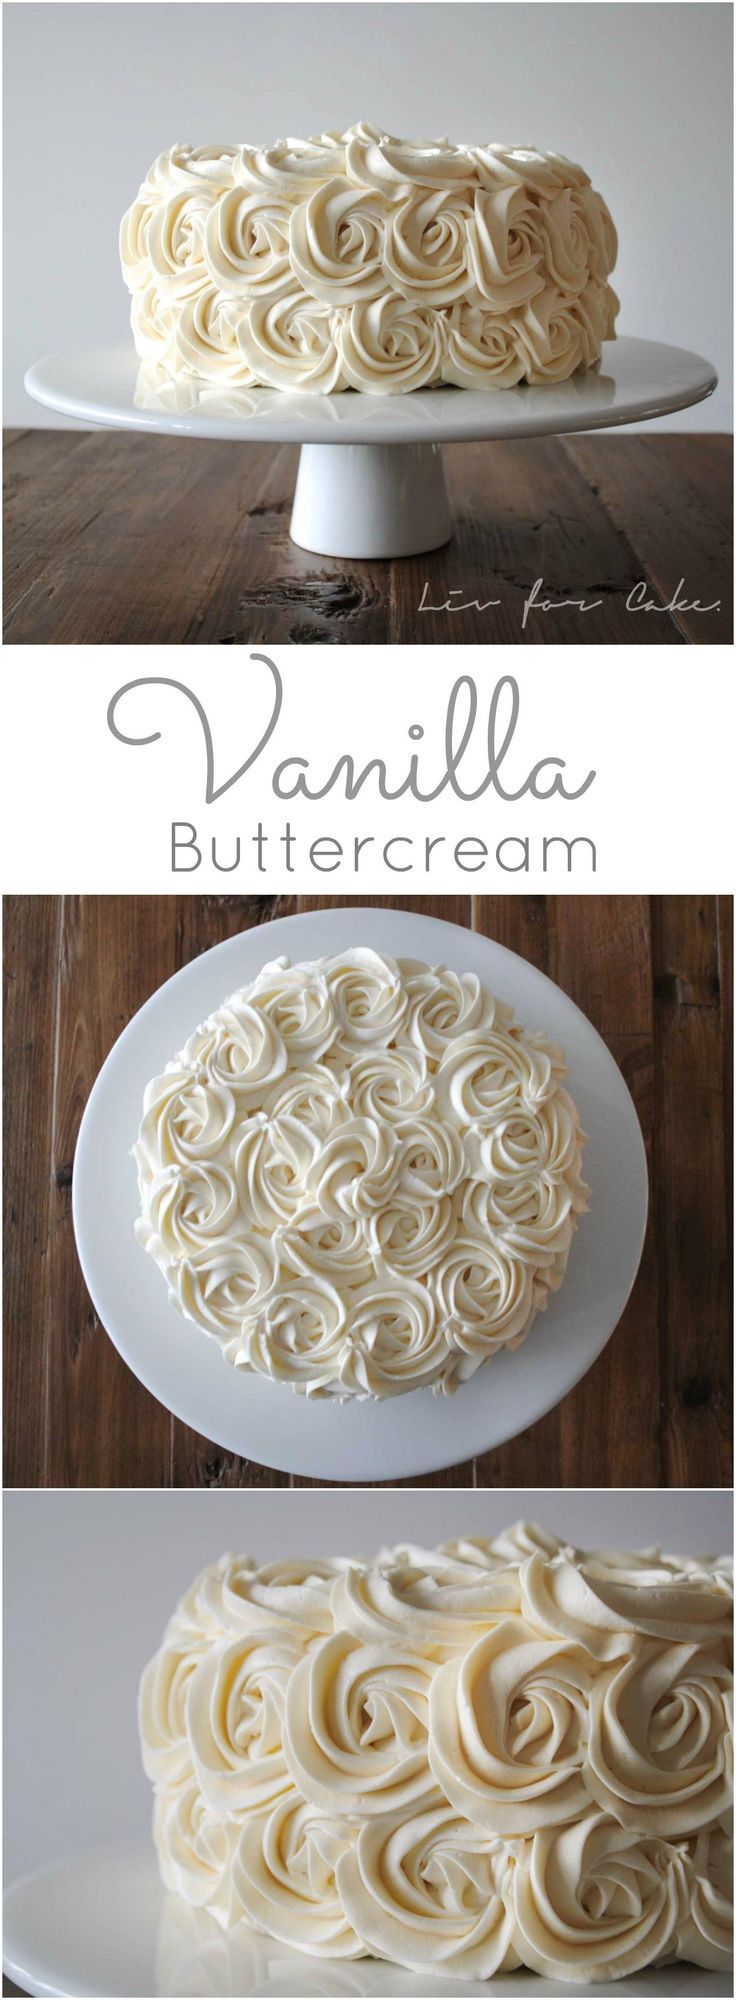 Quick, easy, and delicious vanilla buttercream recipe. | livforcake.com